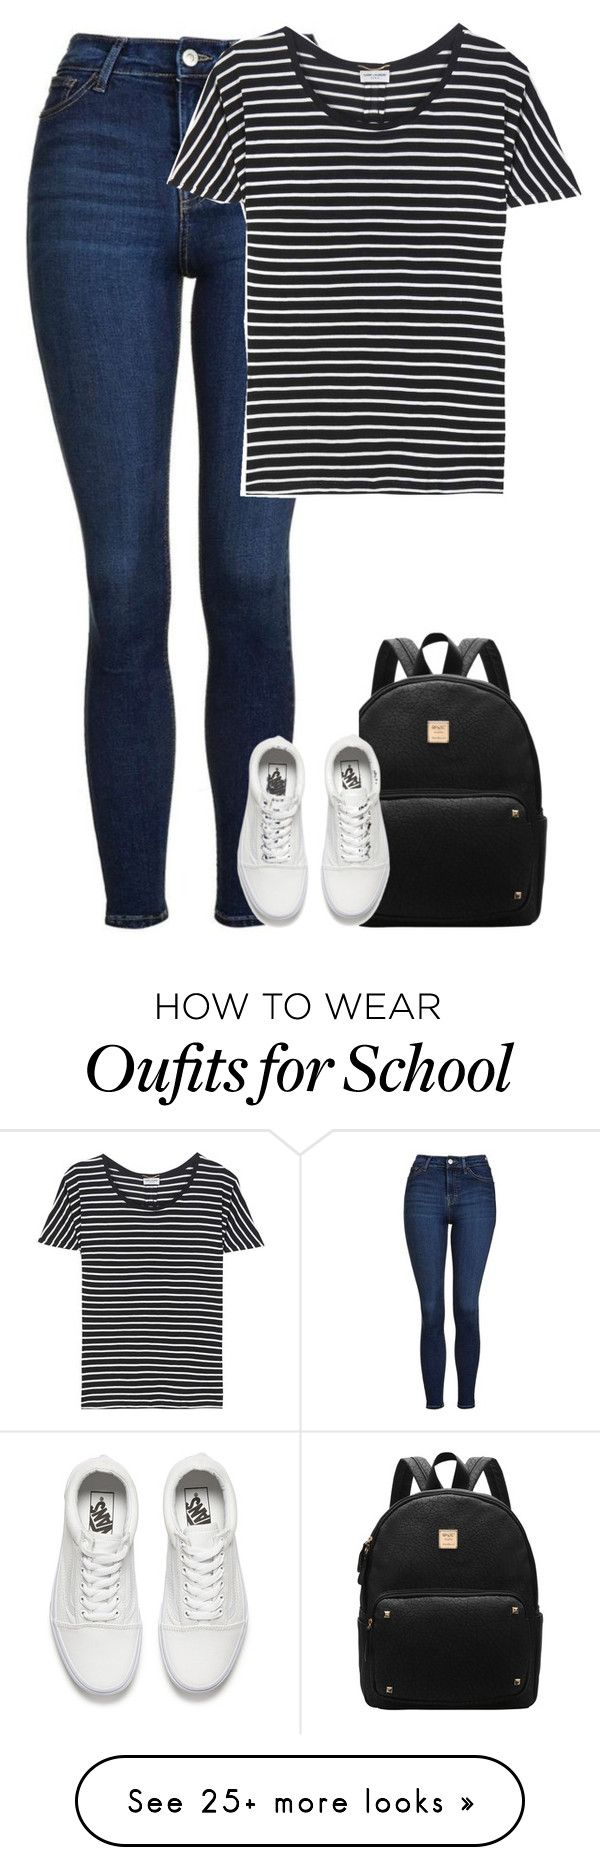 """School 2"" by fanny483 on Polyvore featuring Topshop, Yves Saint Laurent and Vans"